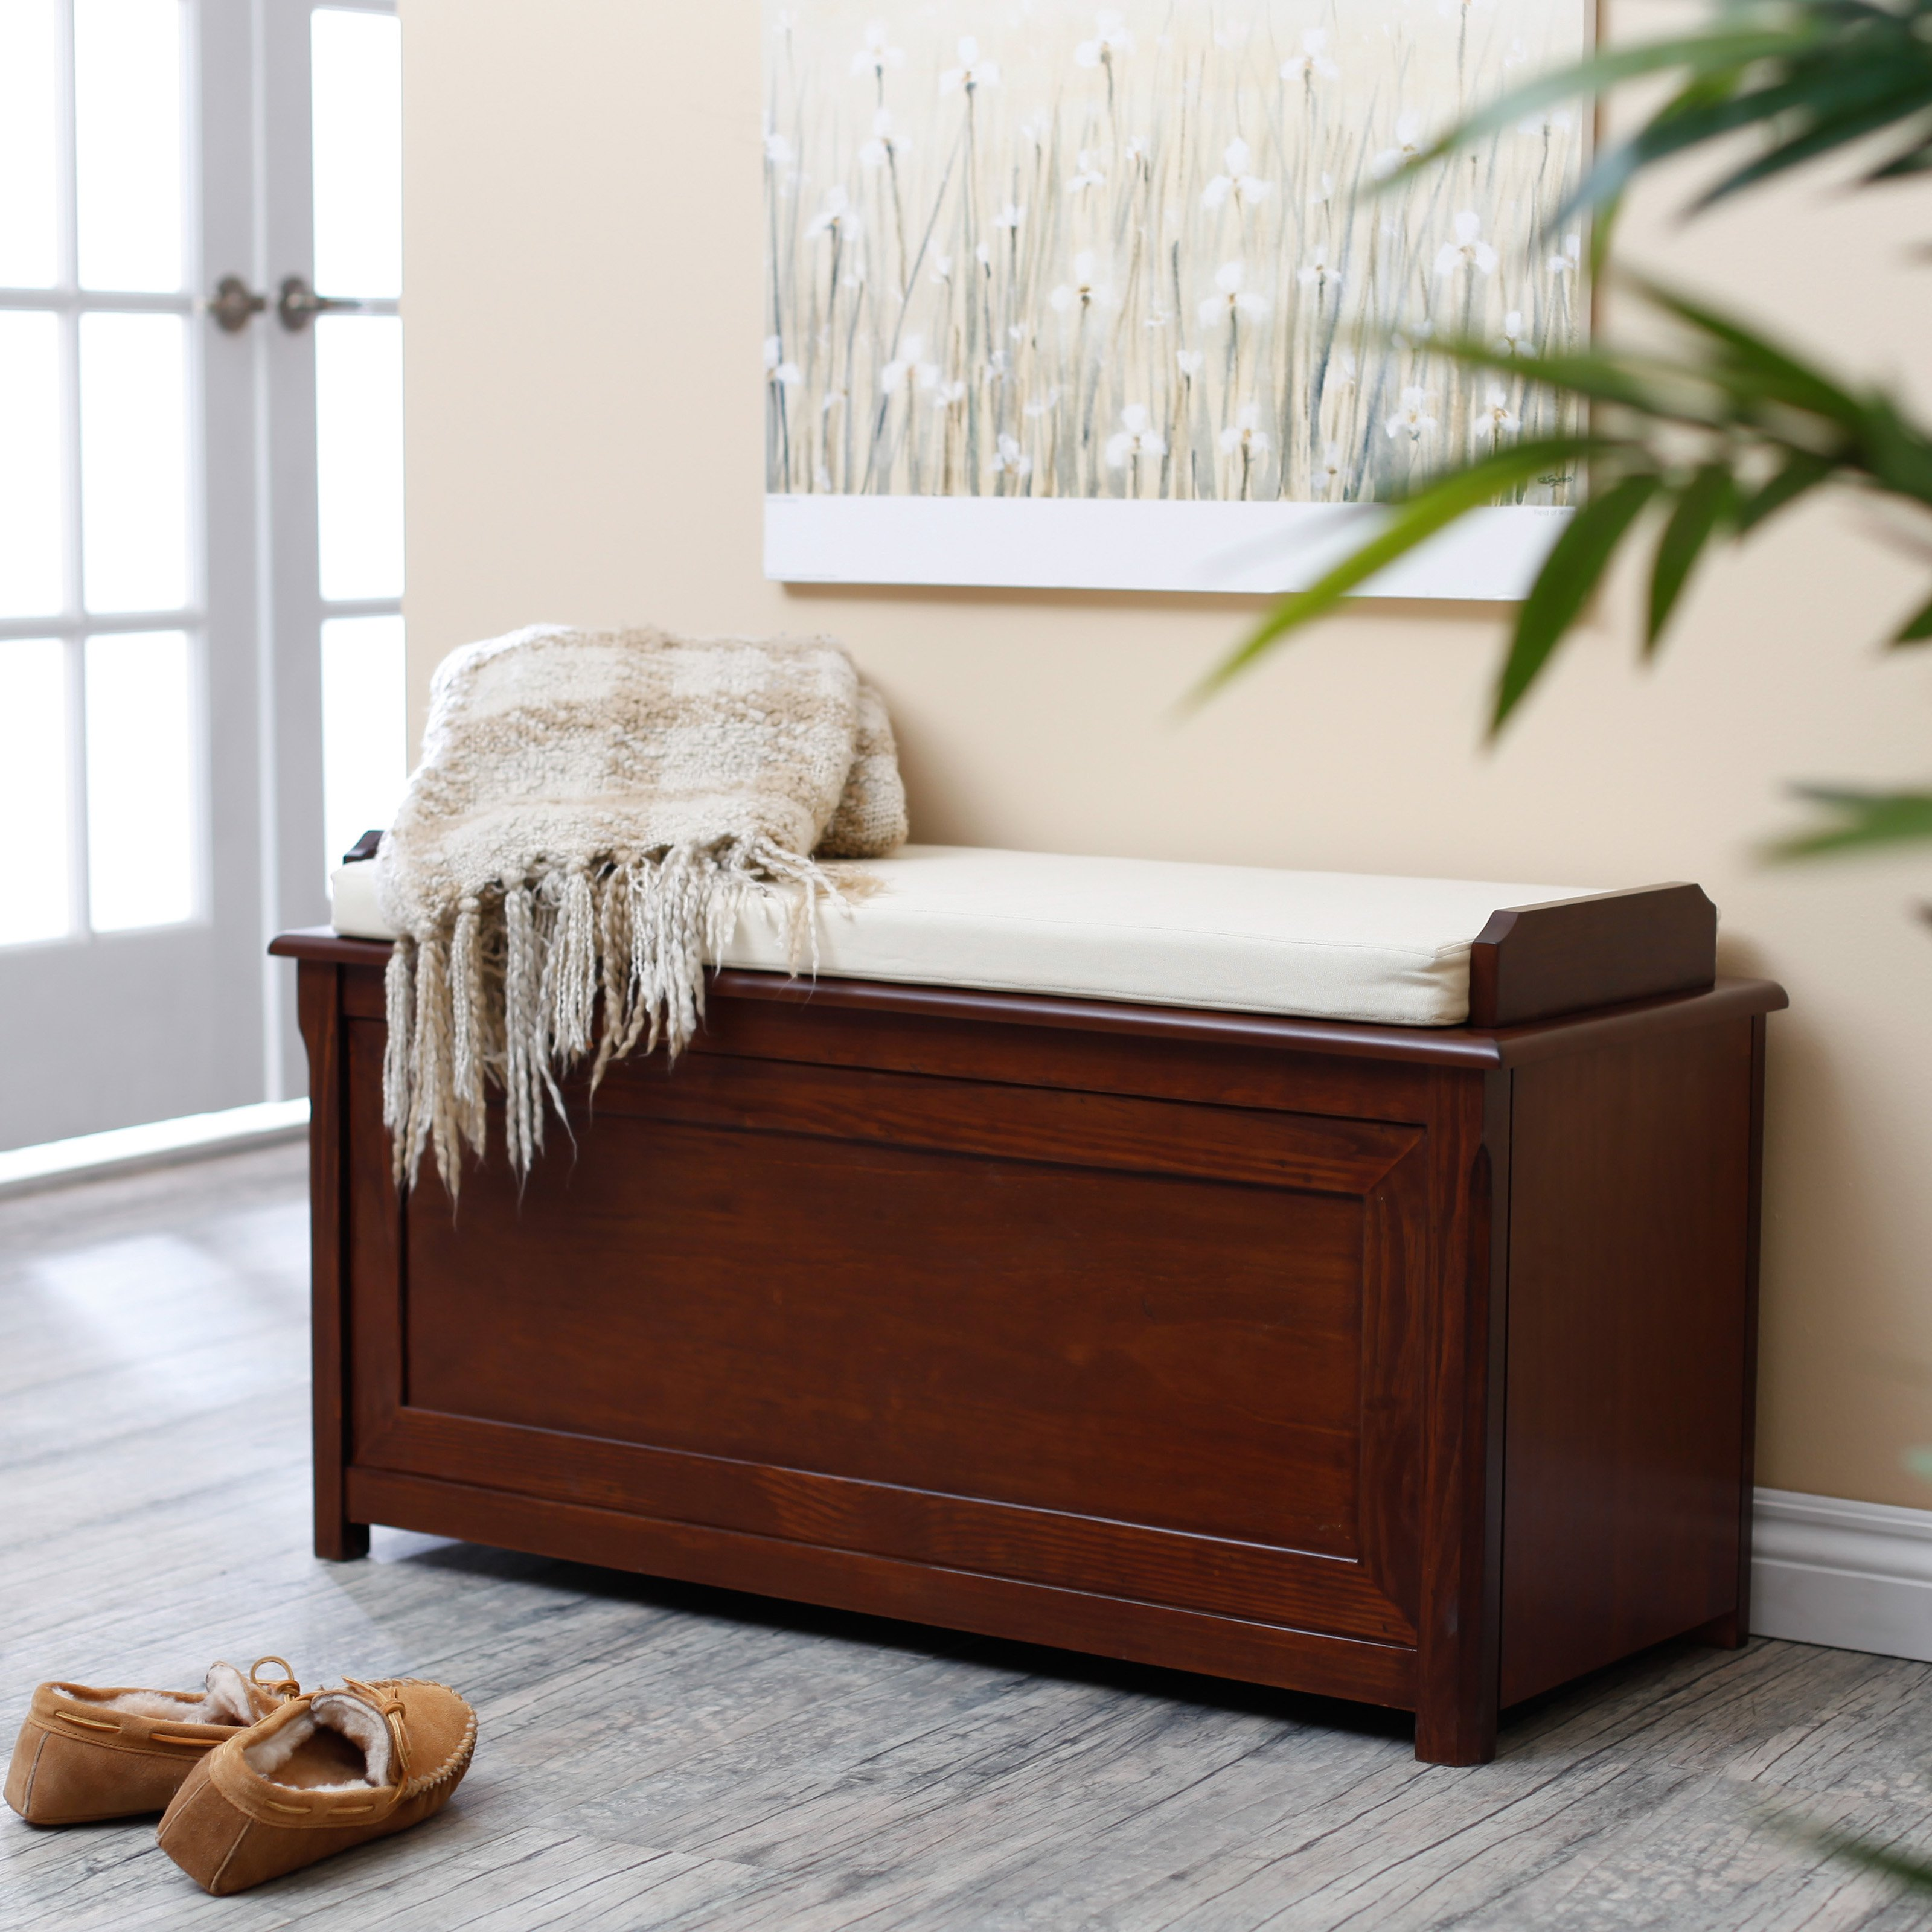 Belham Living Cedar Chest Mission Bench with Cushion - Ch...